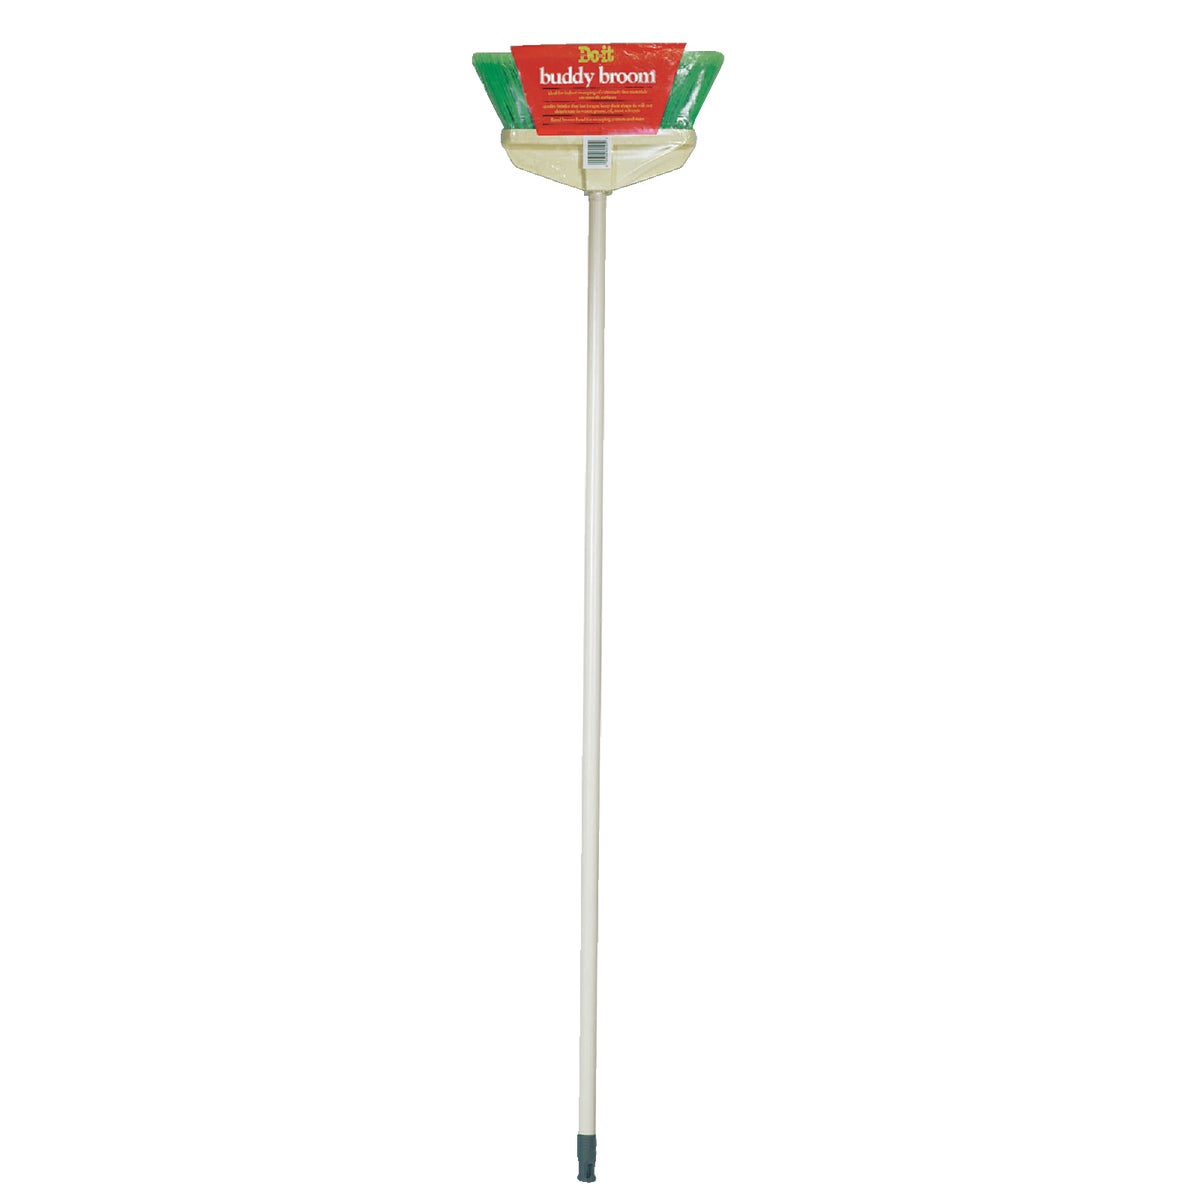 BUDDY BROOM - 616206 by Bruske Products